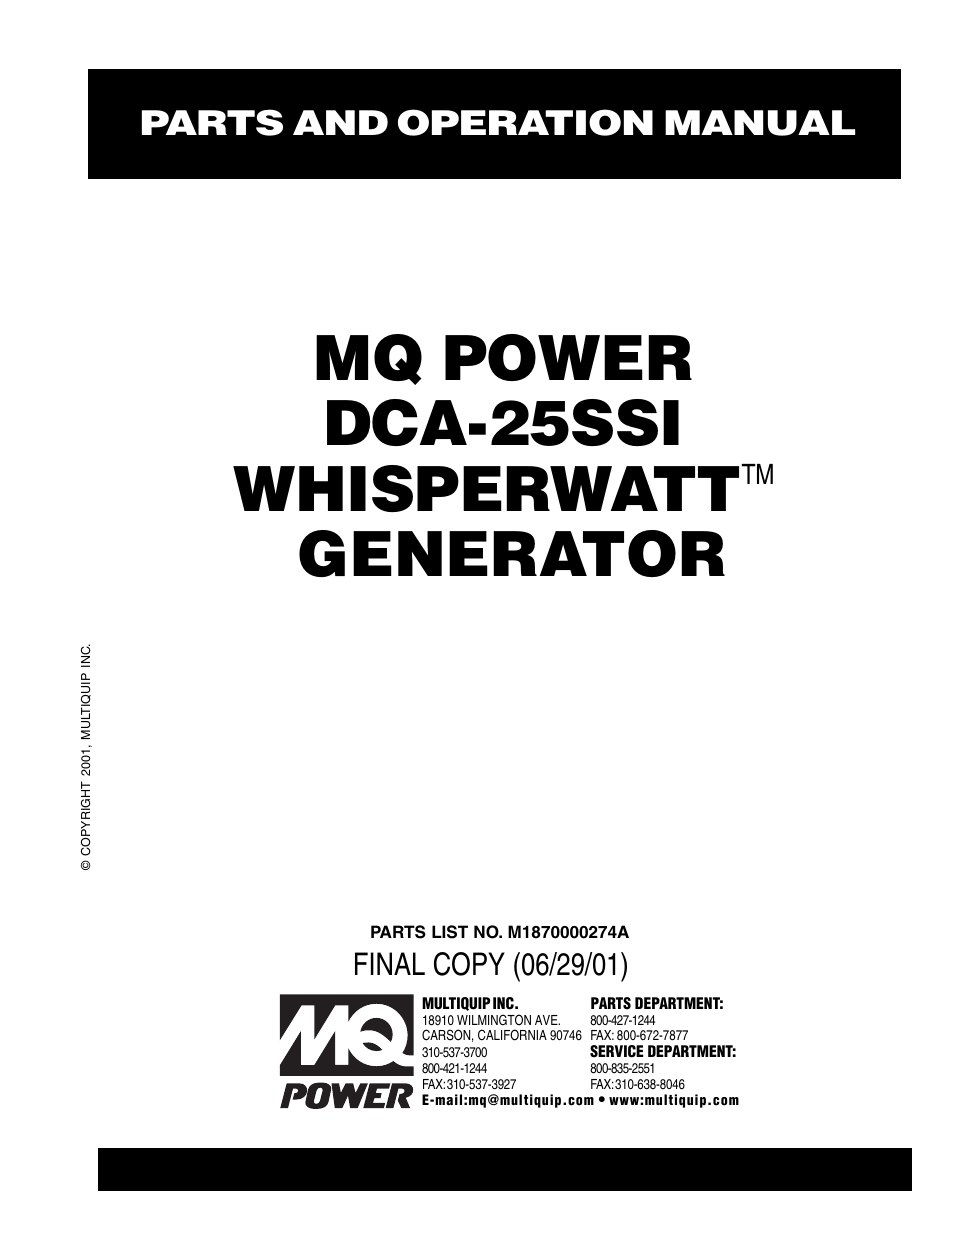 Multiquip MQ Power Whisperwatt Generator DCA-25SSI User